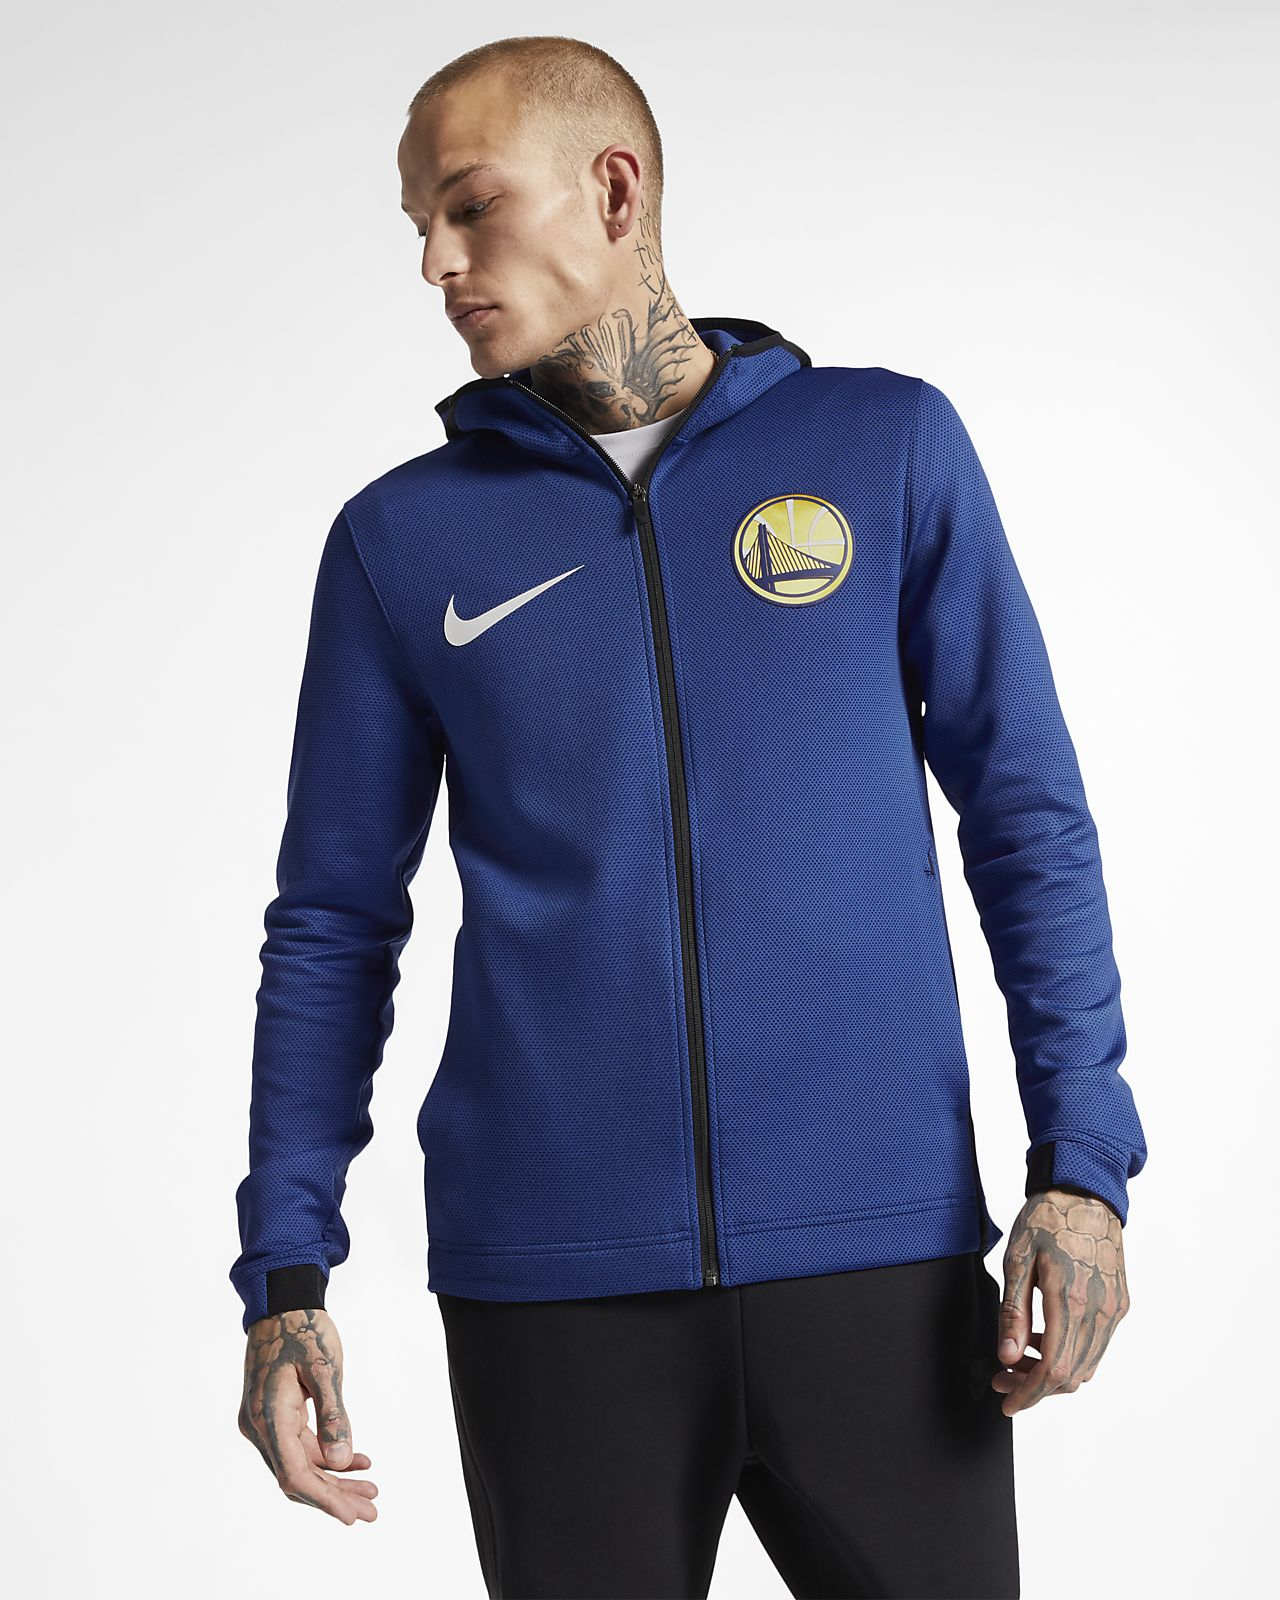 76942a71d7f8 Golden State Warriors Nike Therma Flex Showtime Men s NBA Hoodie ...